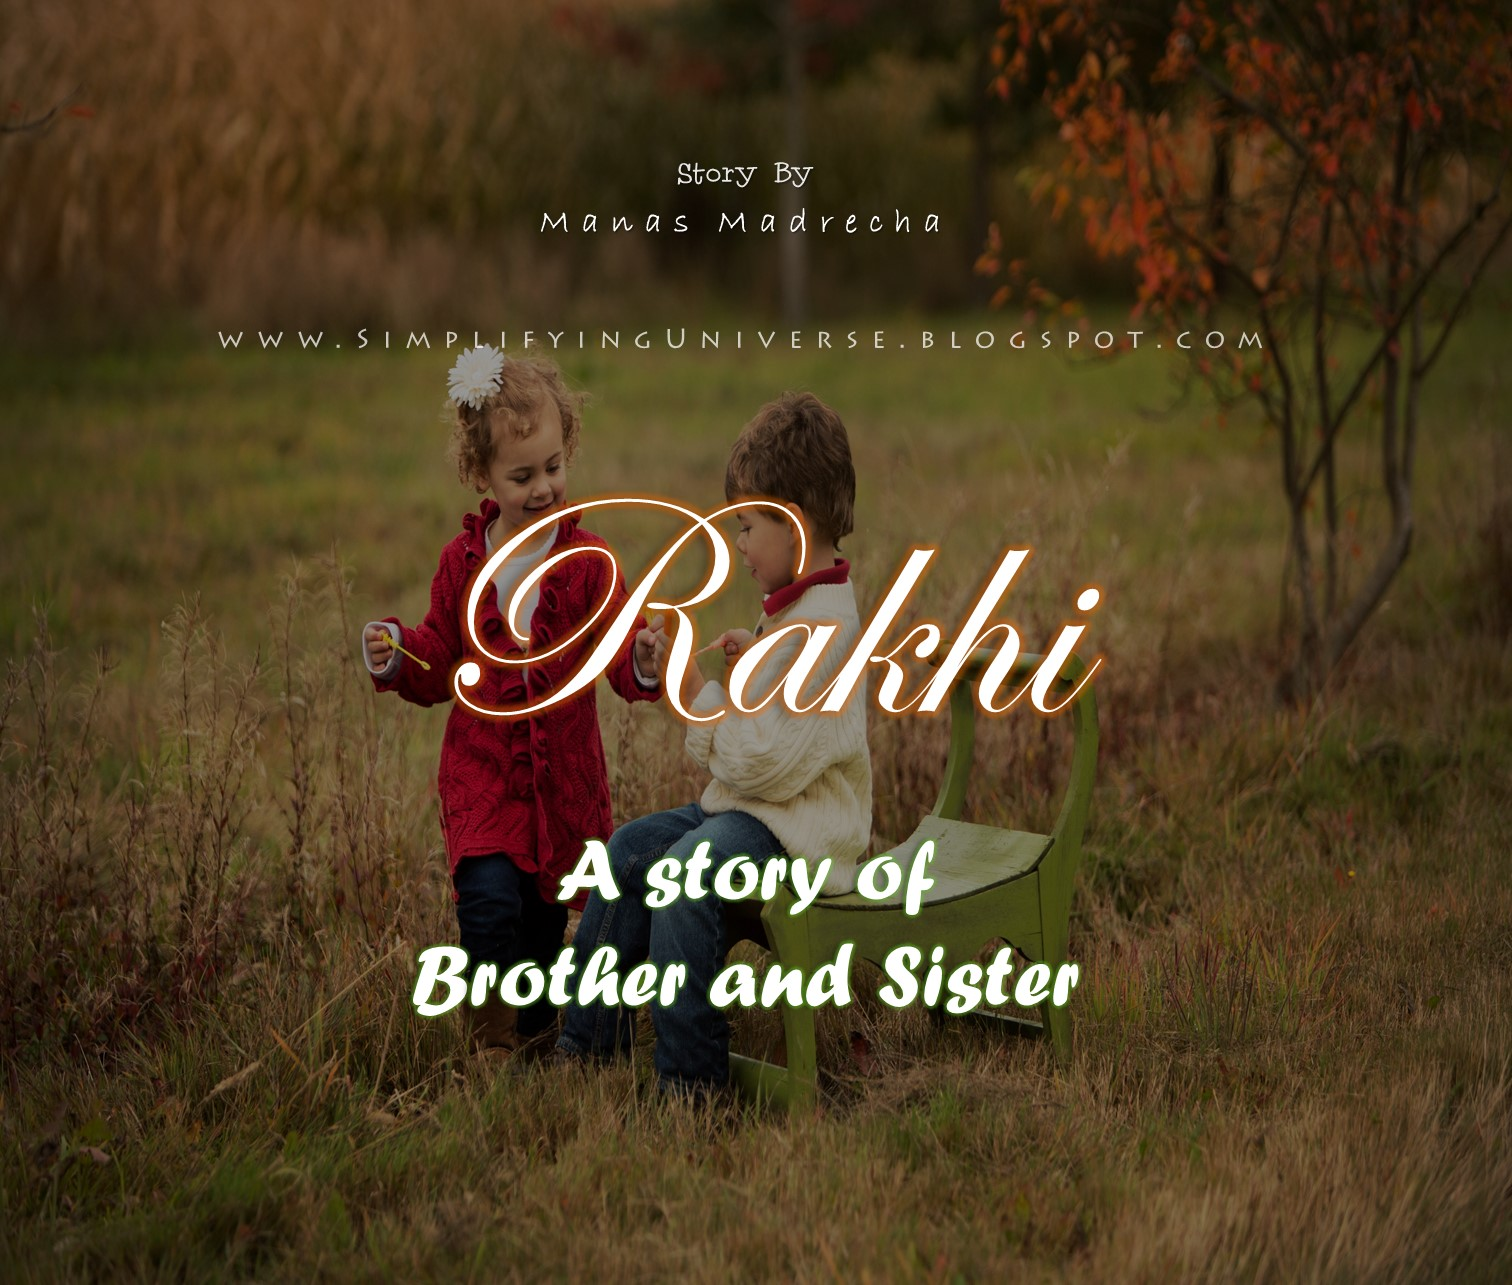 Brother And Sister Love Quotes Stunning Rakhi  A Story Of Brother And Sister  Manas Madrecha